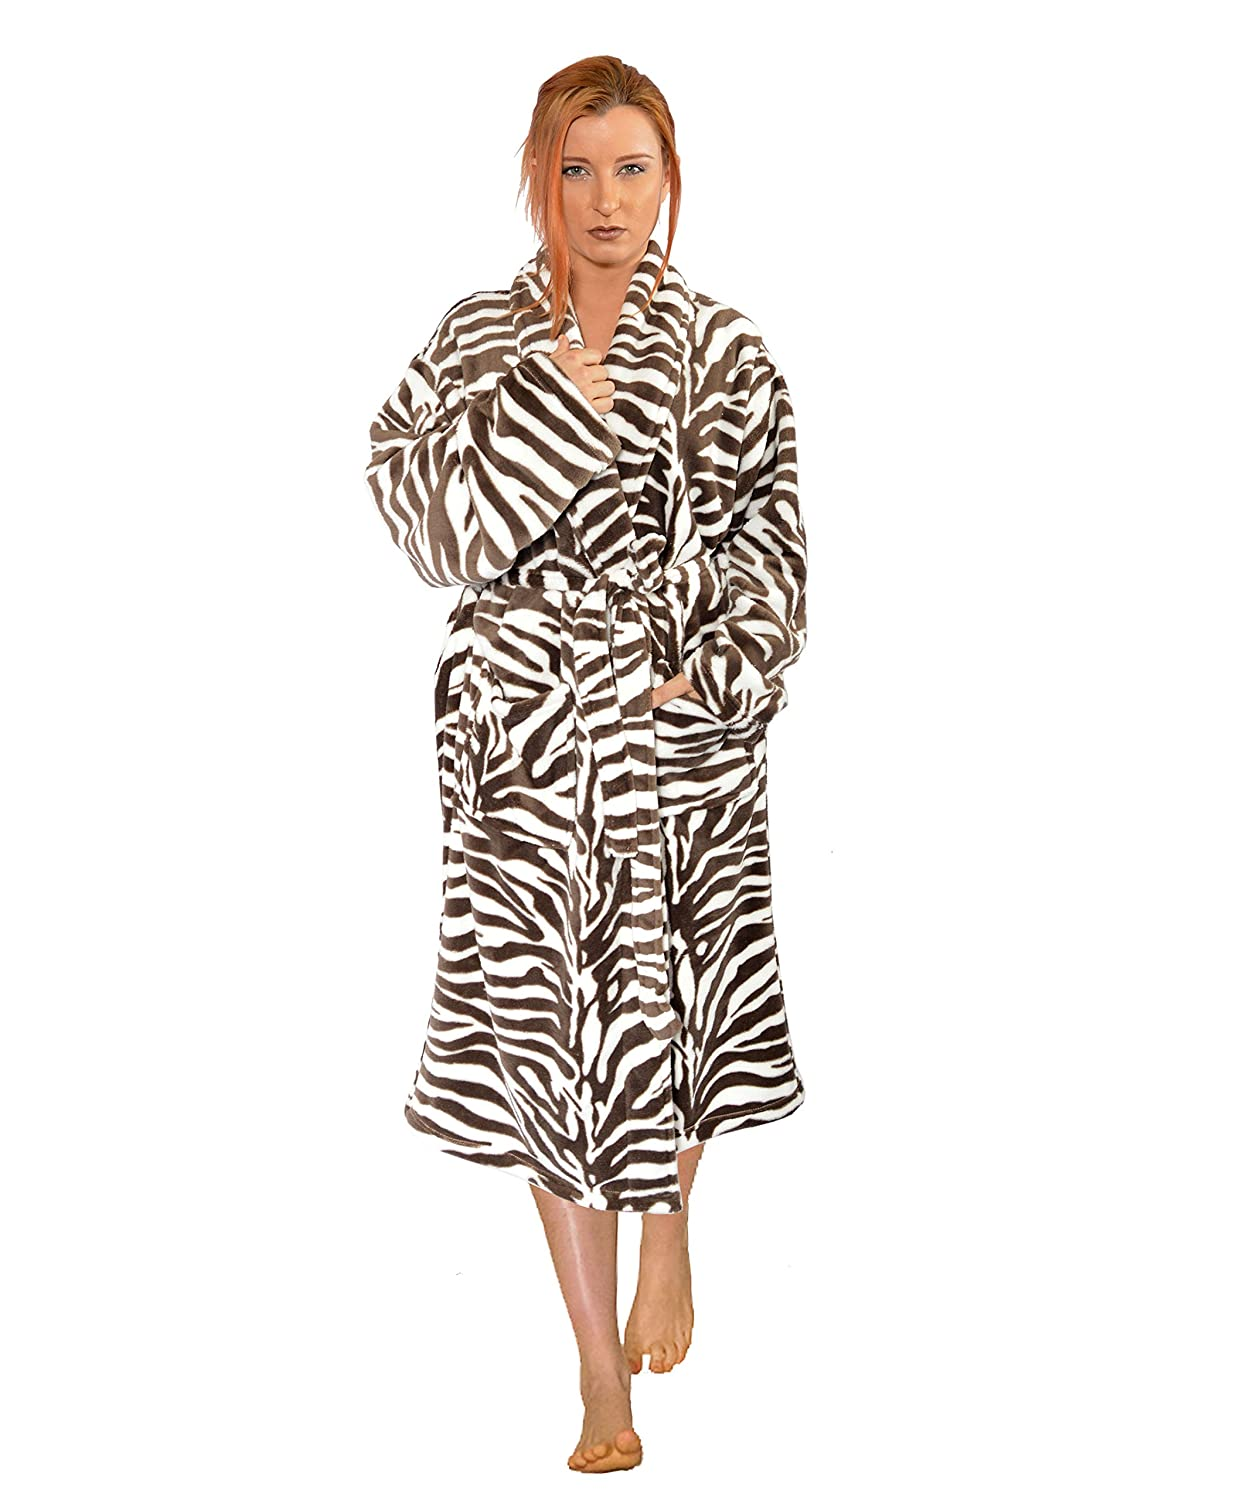 9deefe0391 Home soft things men women bathrobe printed microfiber flannel fleece cloth  robe light brown zebra home